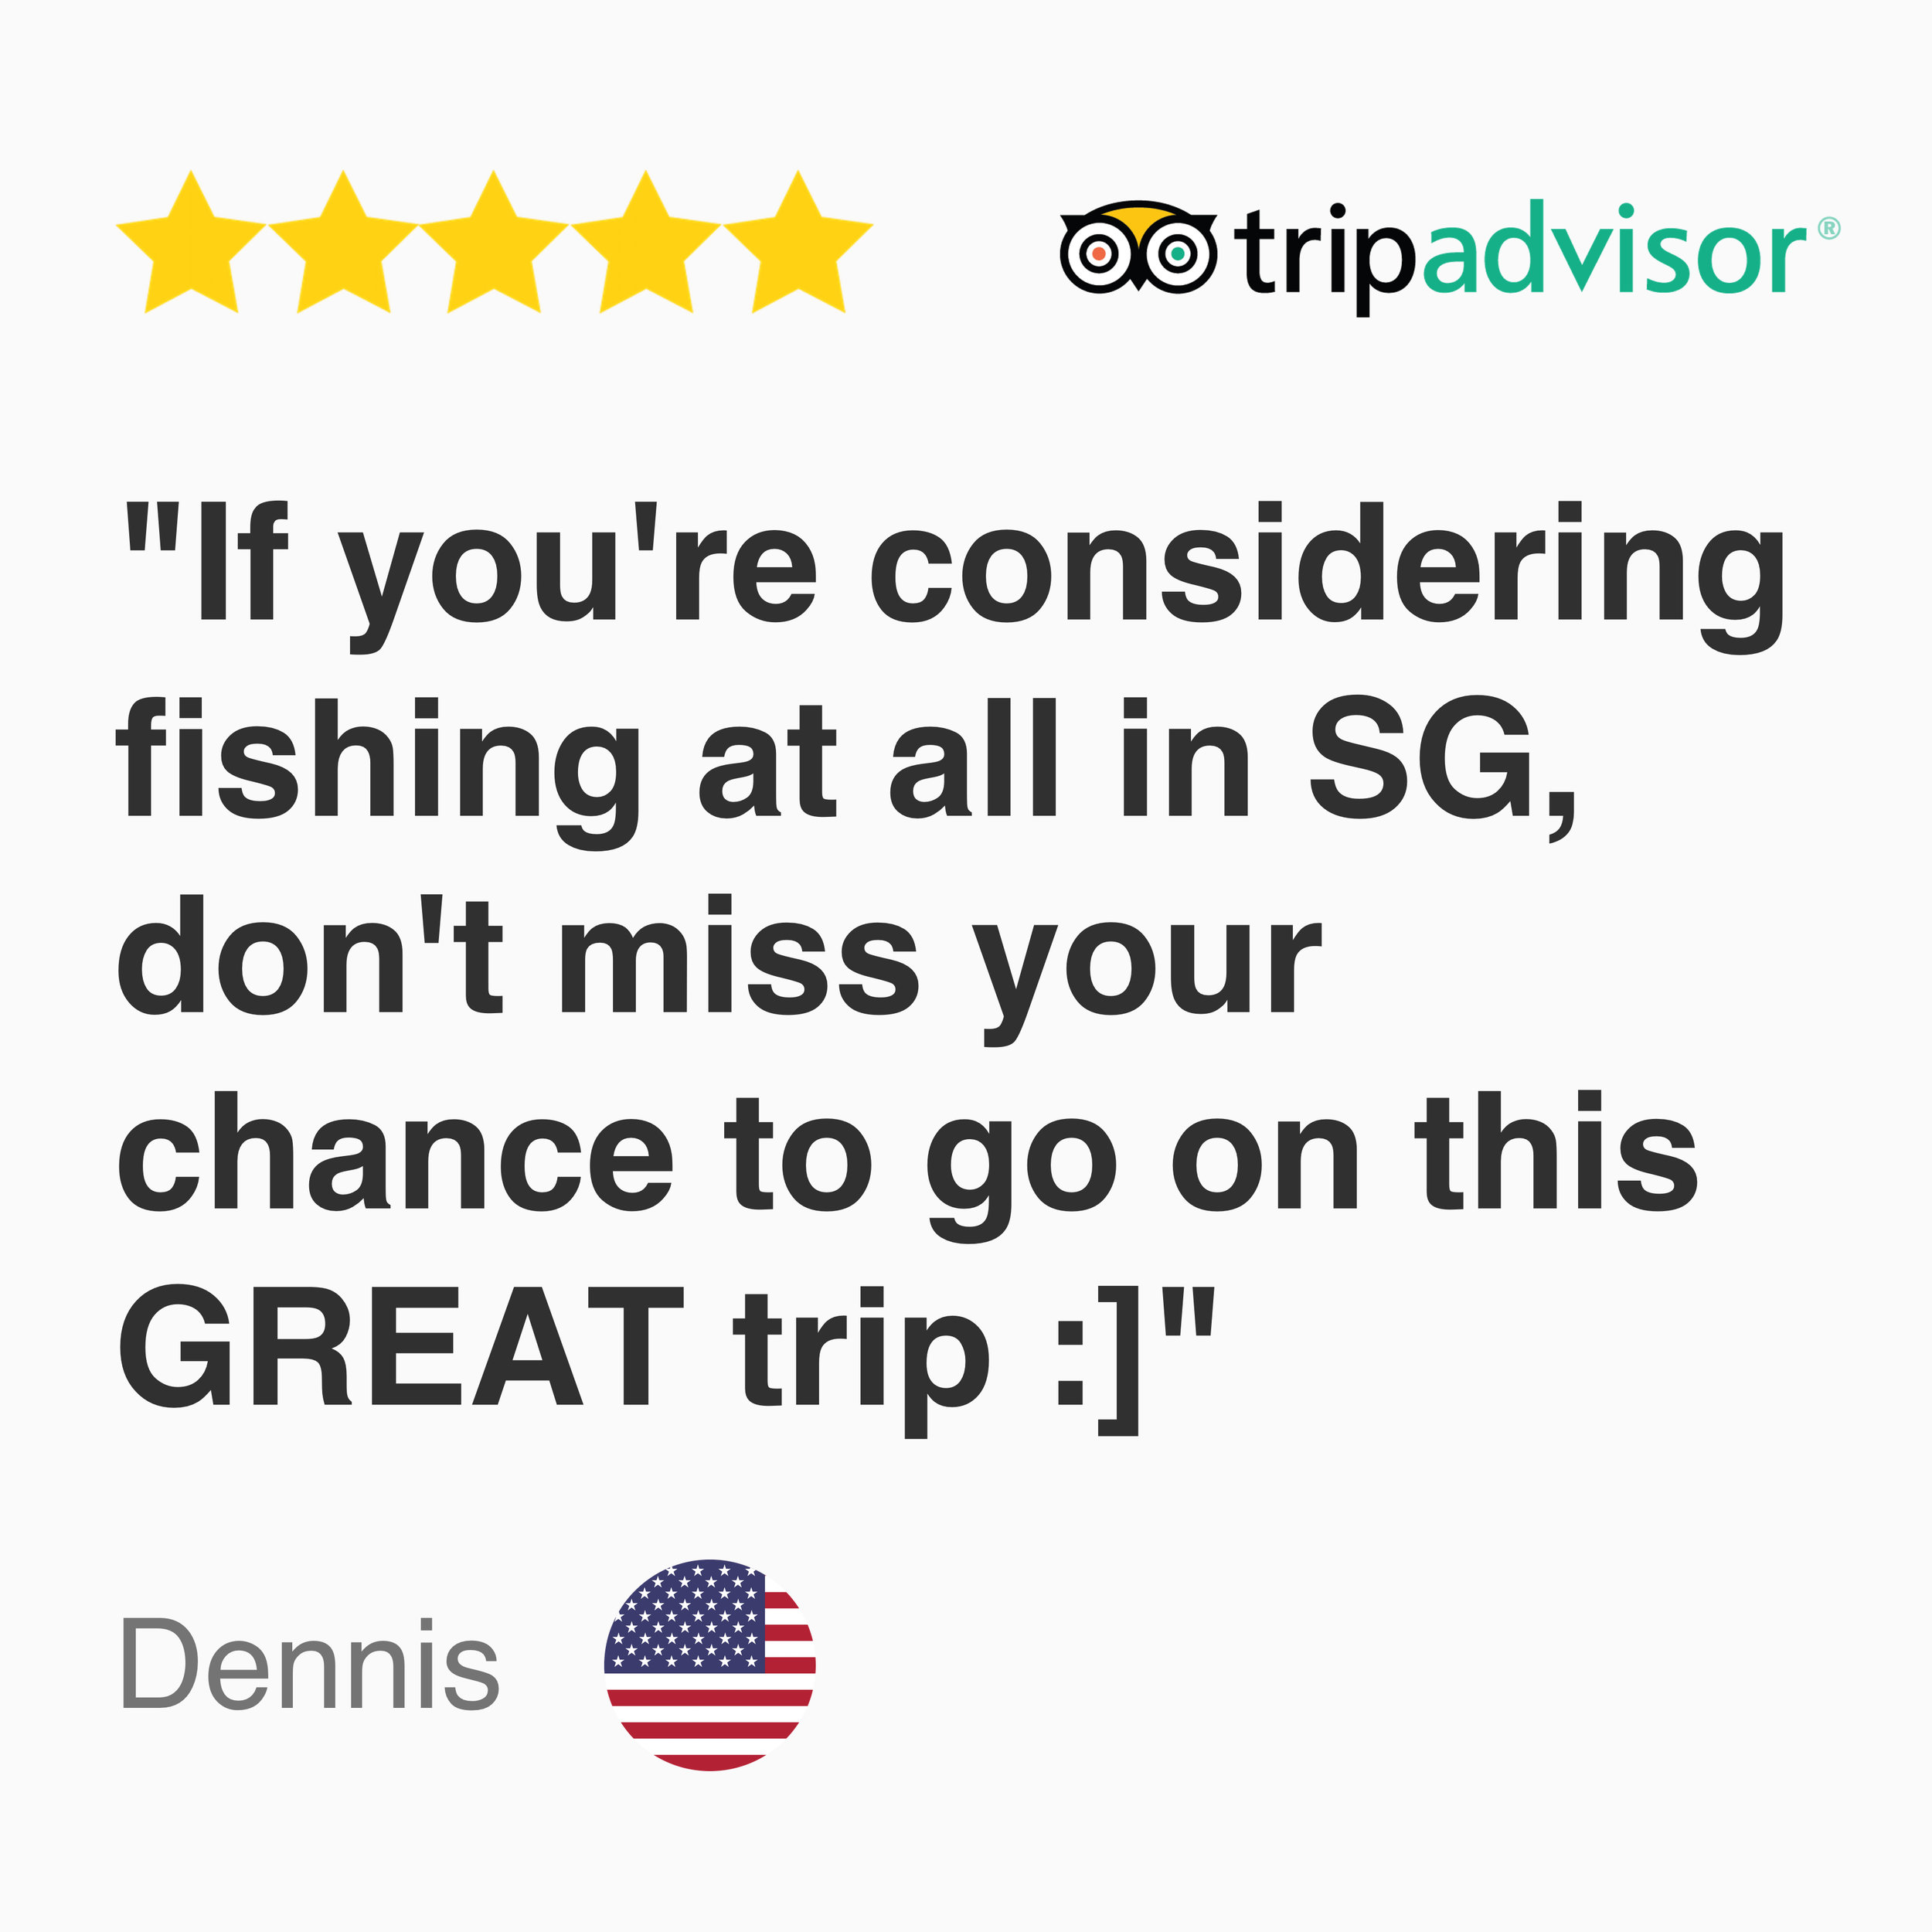 5 star tripadvisor review for kayak fishing singapore tour 'Big vs Small': If you're considering fishing at all in SG, don't miss your chance to go on this GREAT trip :]